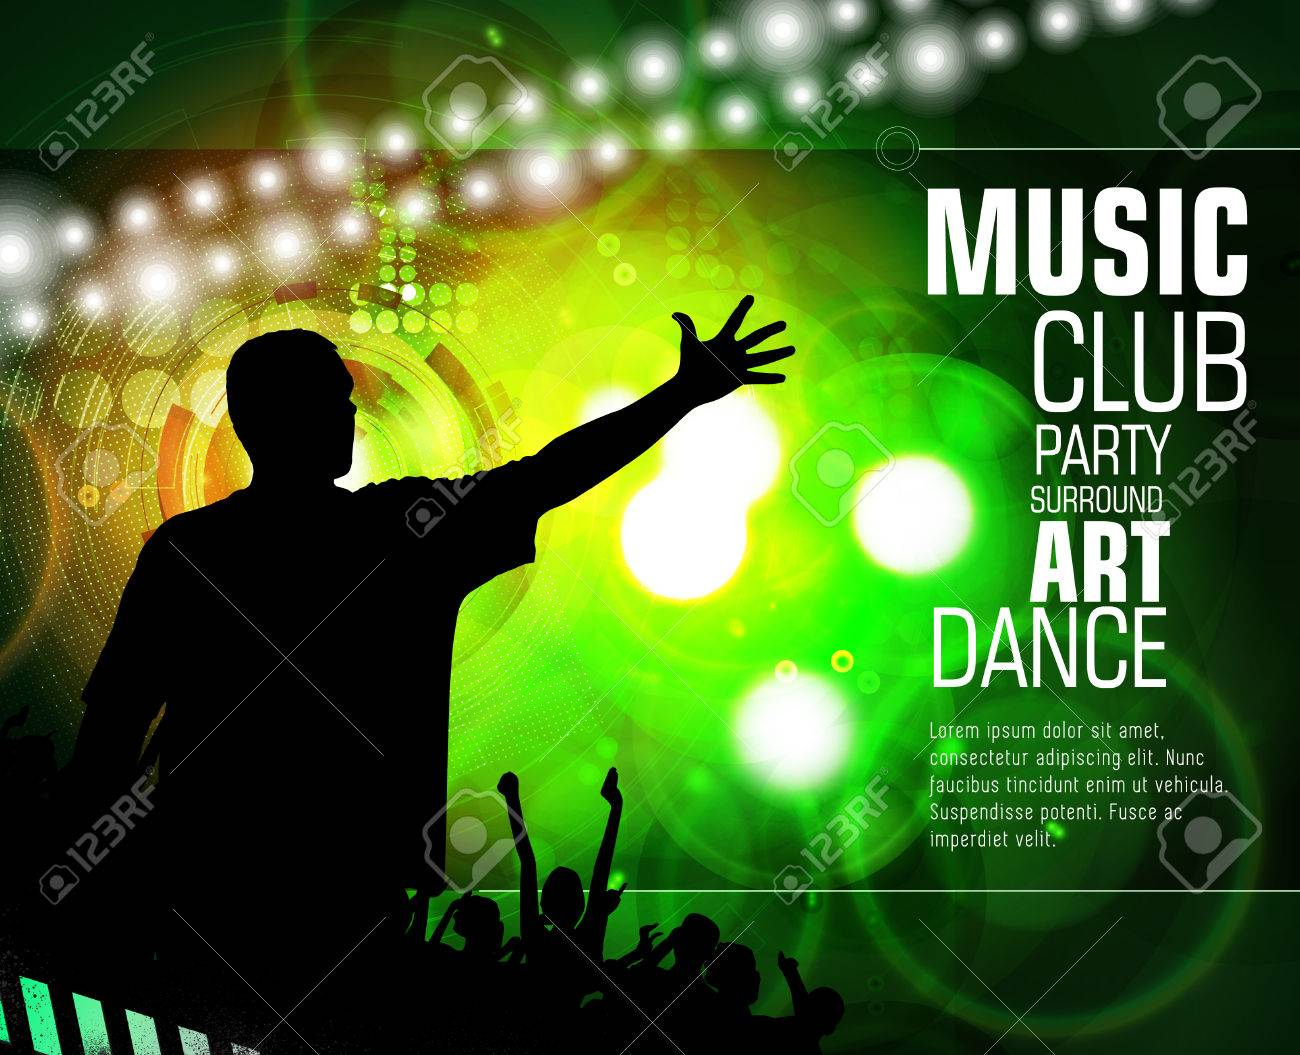 Disco Party Music Event Background For Poster Or Banner Royalty